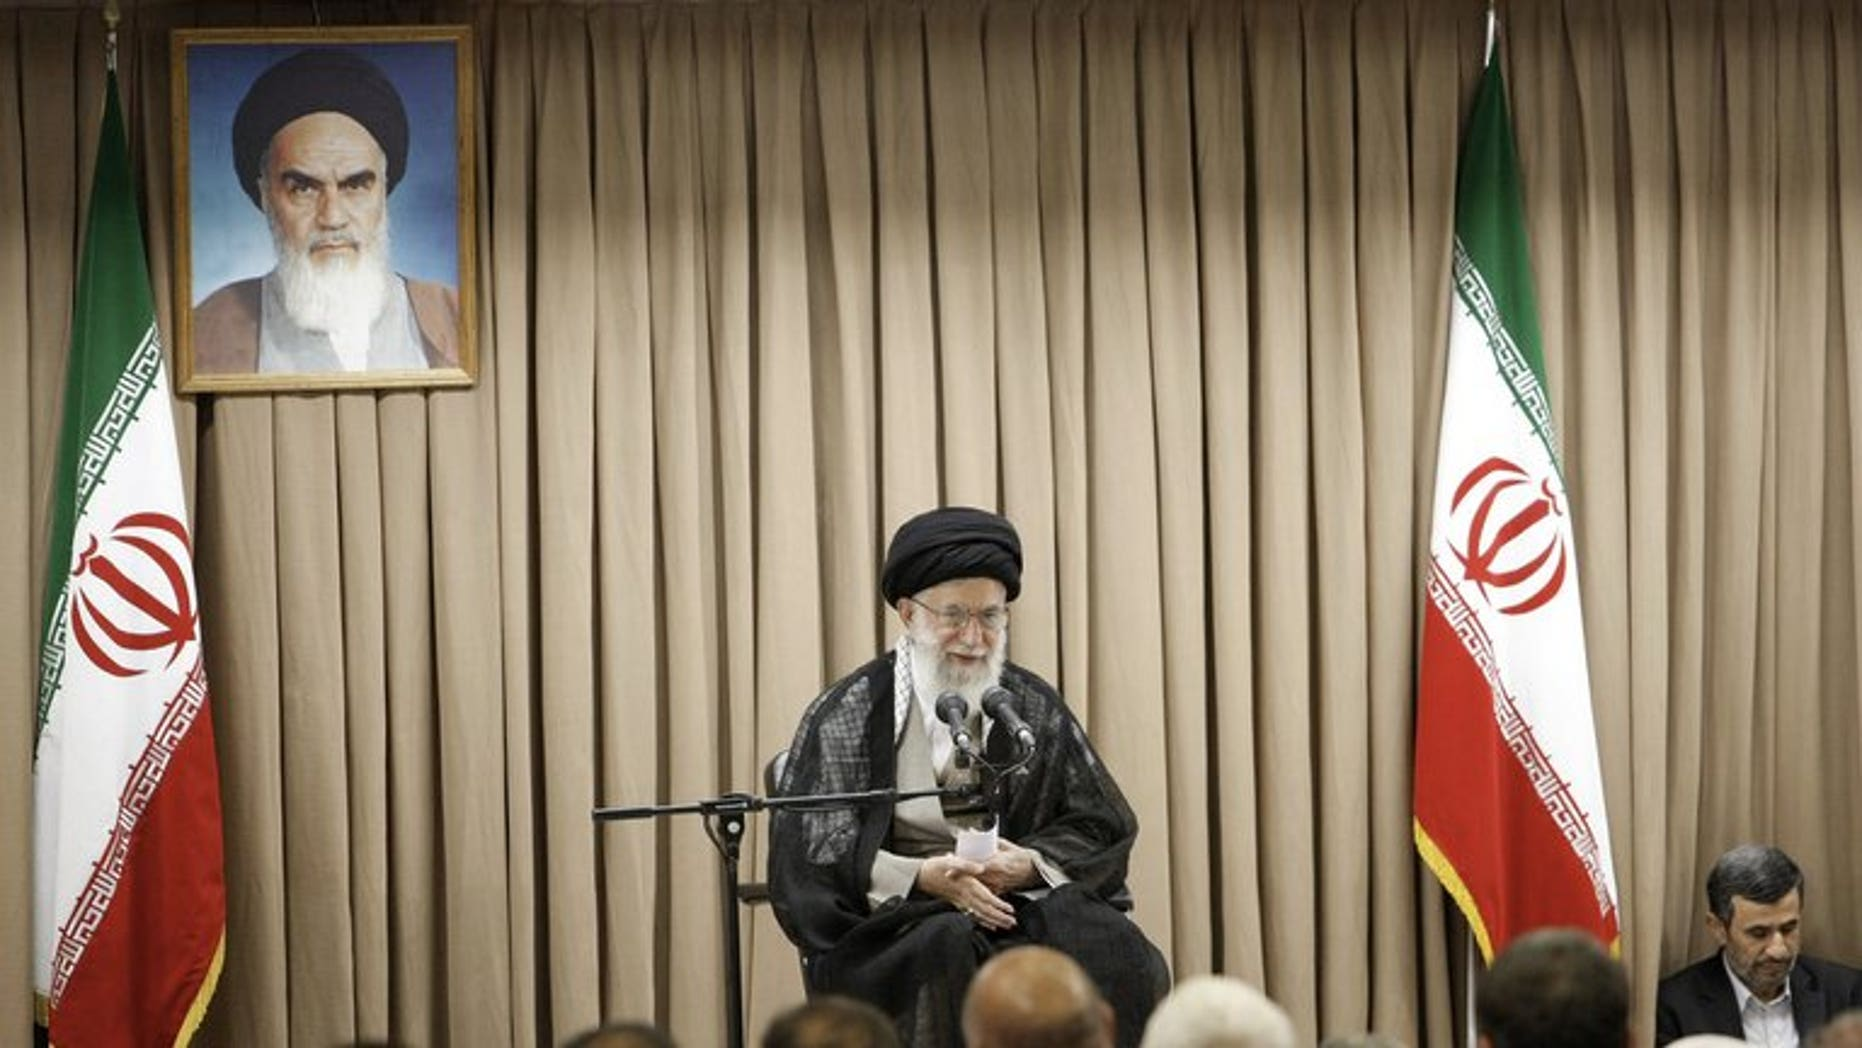 "A picture released by the website of Iranian supreme leader Ayatollah Ali Khamenei (C) shows him speaking at a meeting with Iranian officials in the presence of outgoing President Mahmoud Ahmadinejad (R) in Tehran on July 21, 2013. Khamenei warned that Washington was ""not trustworthy"", after former US officials and lawmakers urged diplomacy with the Islamic republic's incoming president."